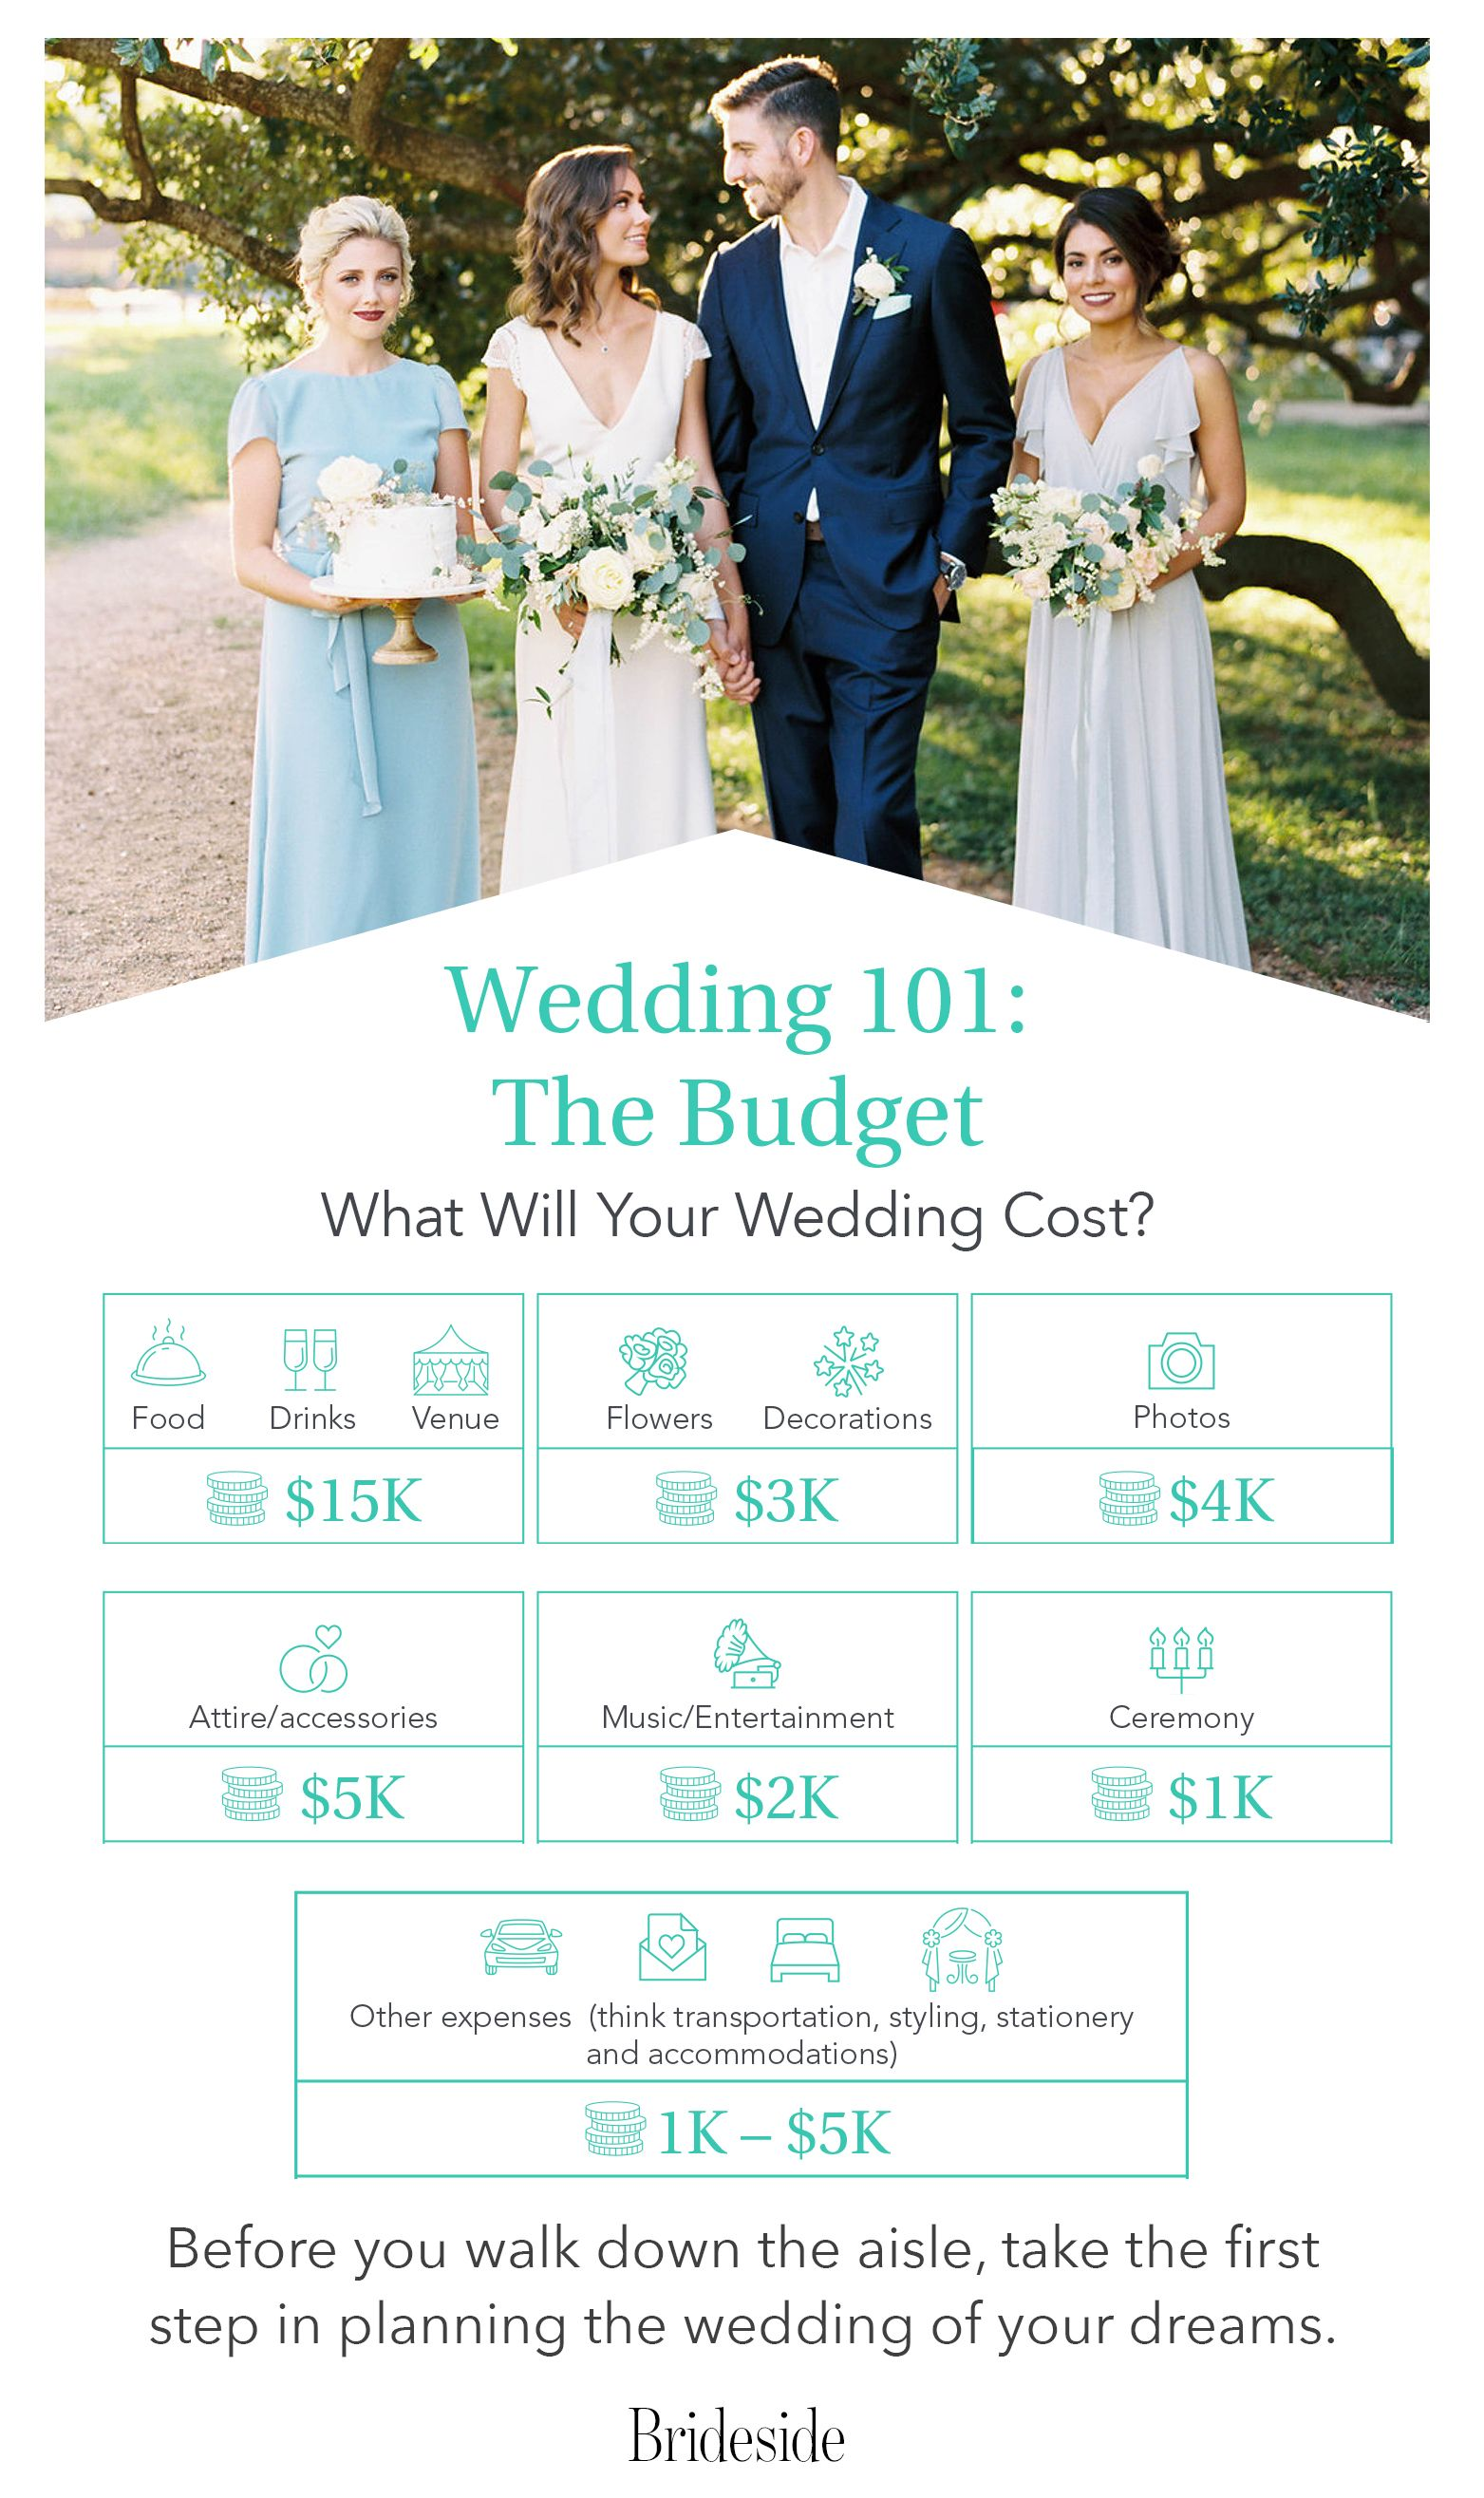 Wedding Budget Spreadsheet Save  With Our Free Excel Template